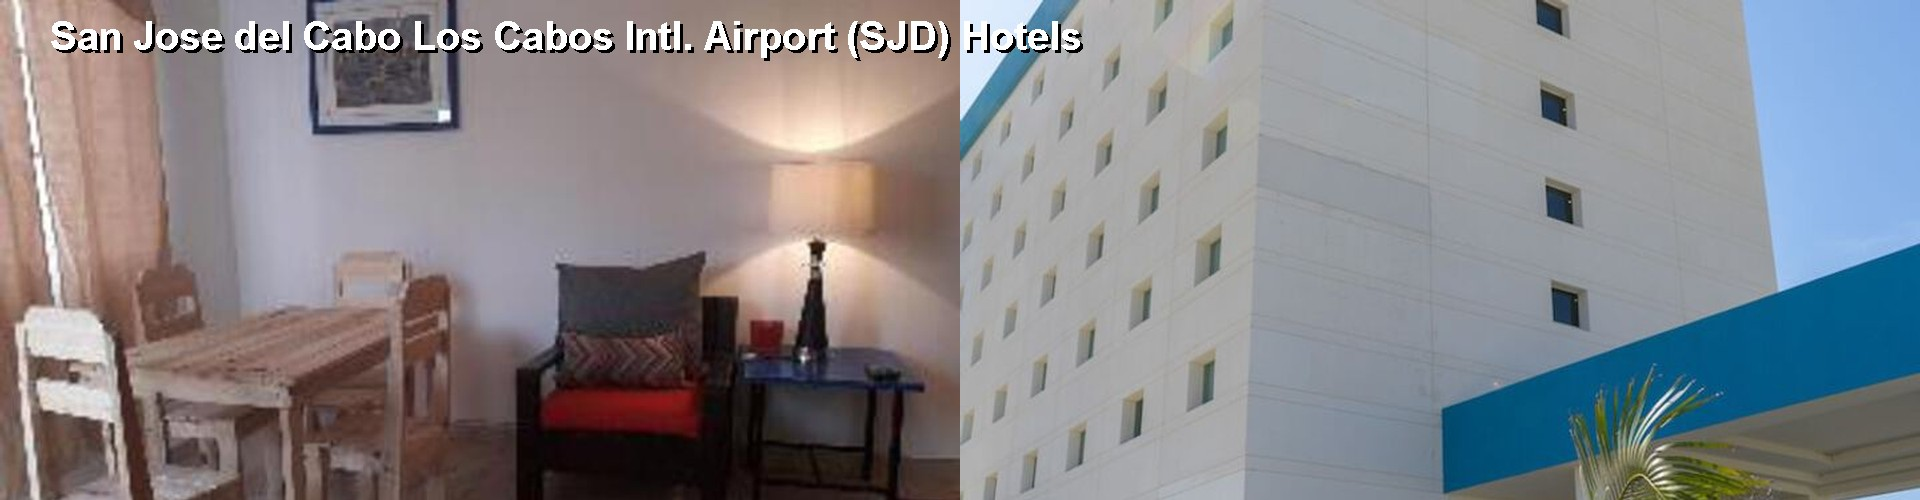 5 Best Hotels near San Jose del Cabo Los Cabos Intl. Airport (SJD)